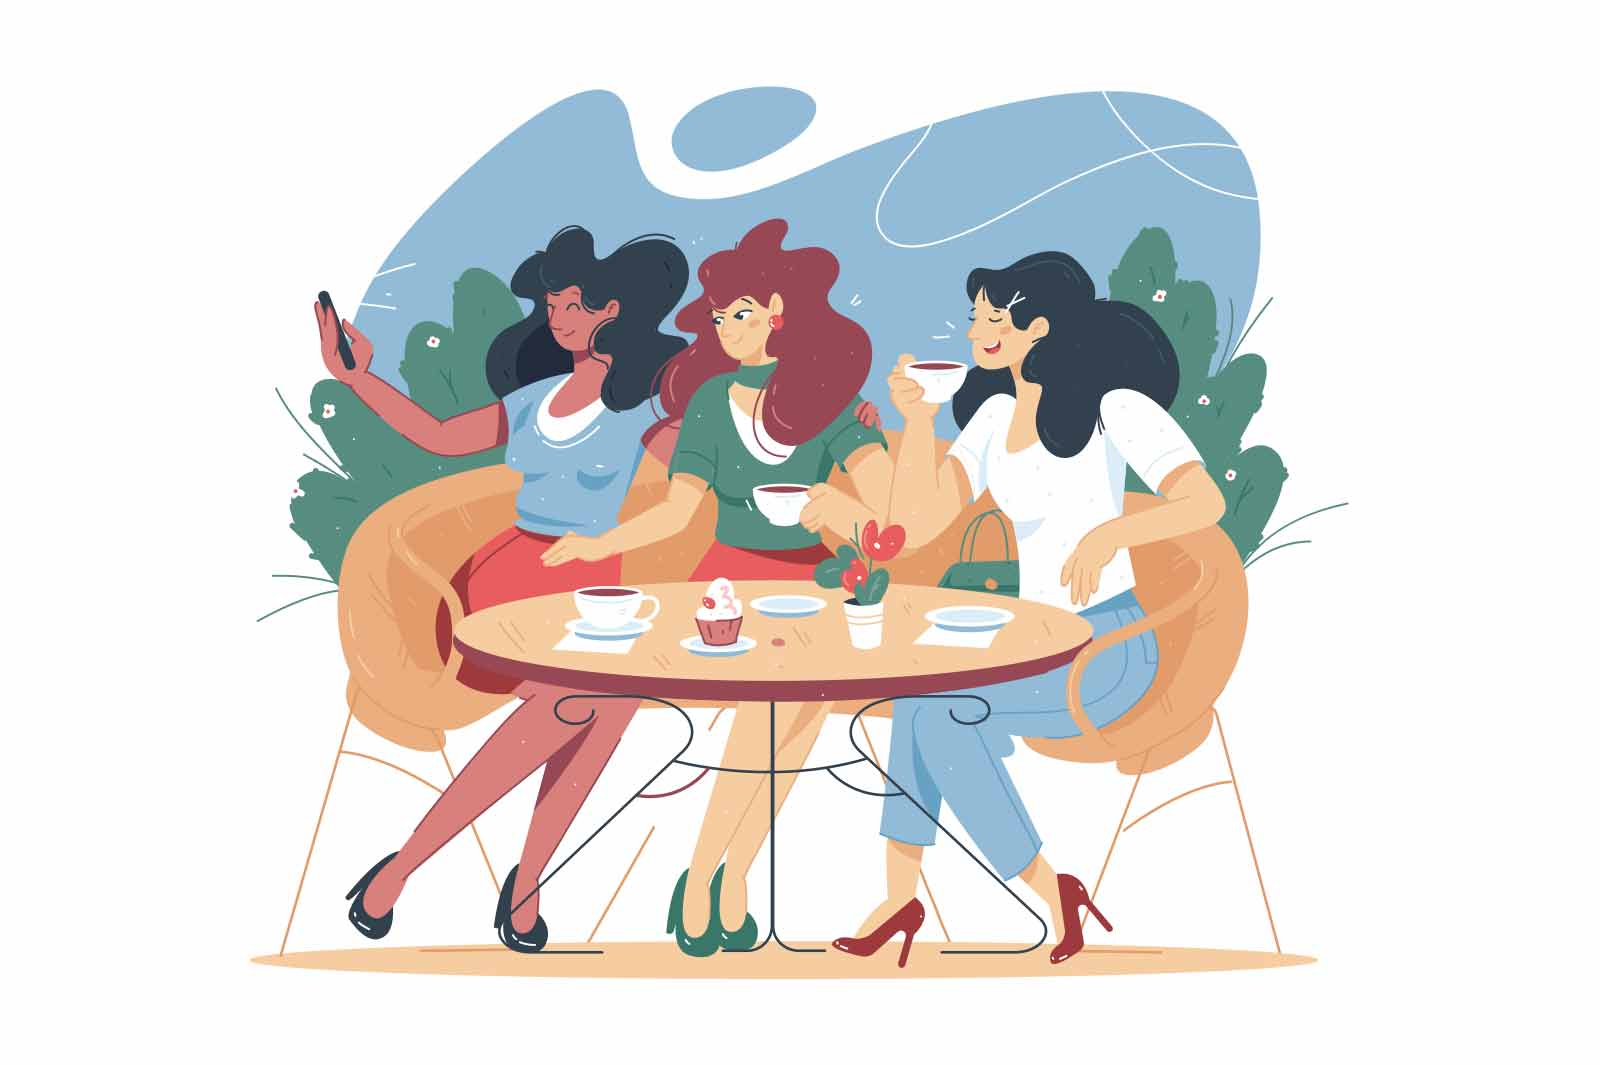 Cartoon people characters spending time in street cafe vector illustration. Women friend drink coffee, eating and making selfie on smartphone. Friendly meeting idea